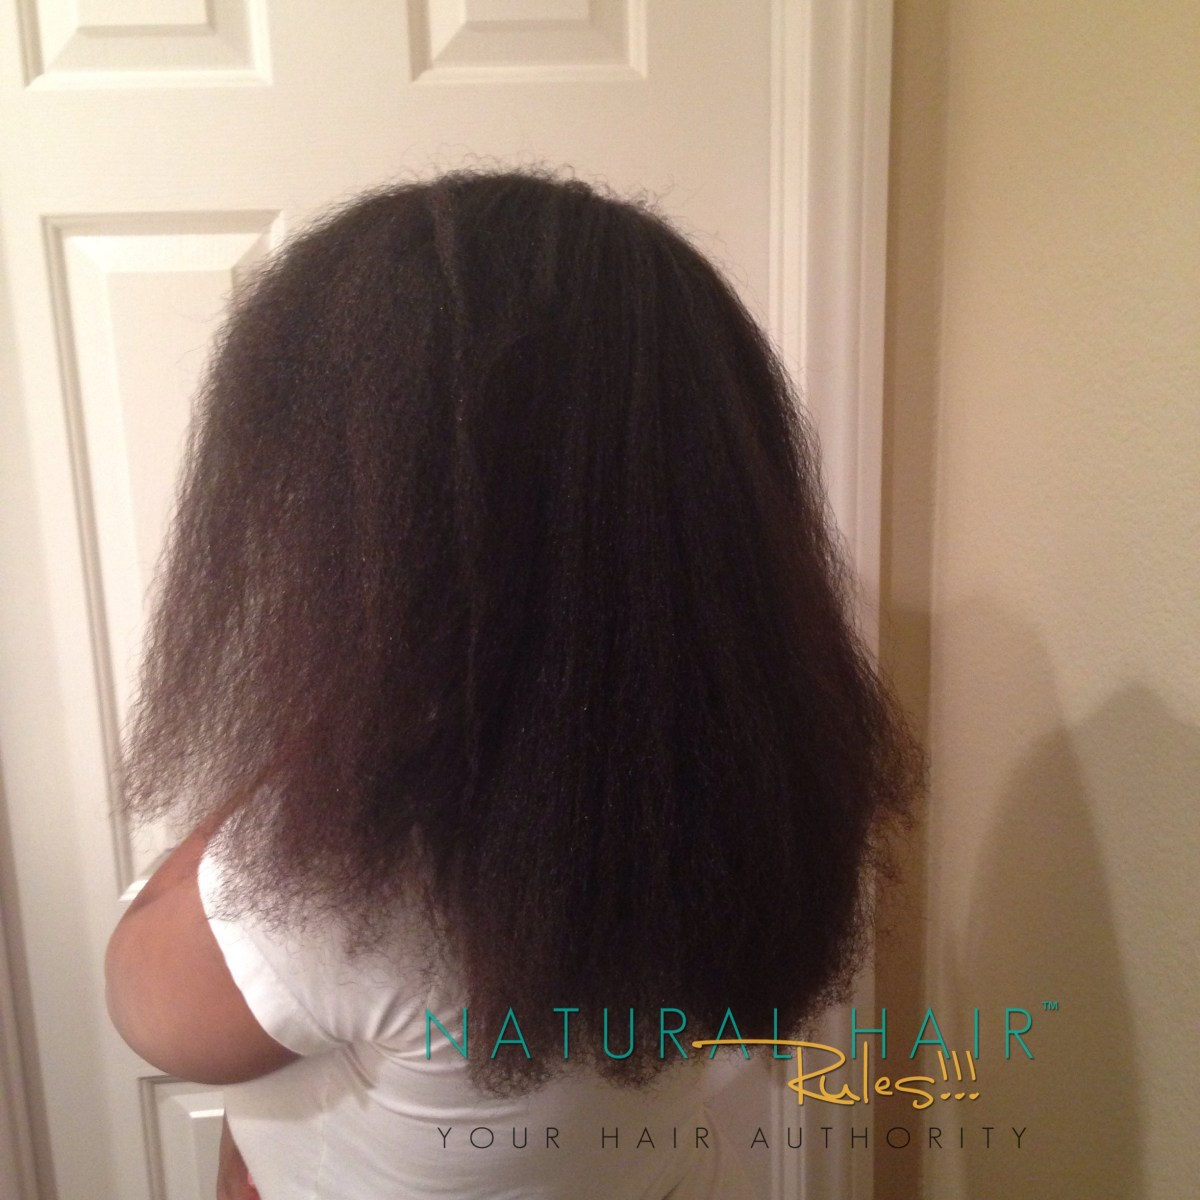 3 Reasons Why I Started Blow Drying My Natural Hair